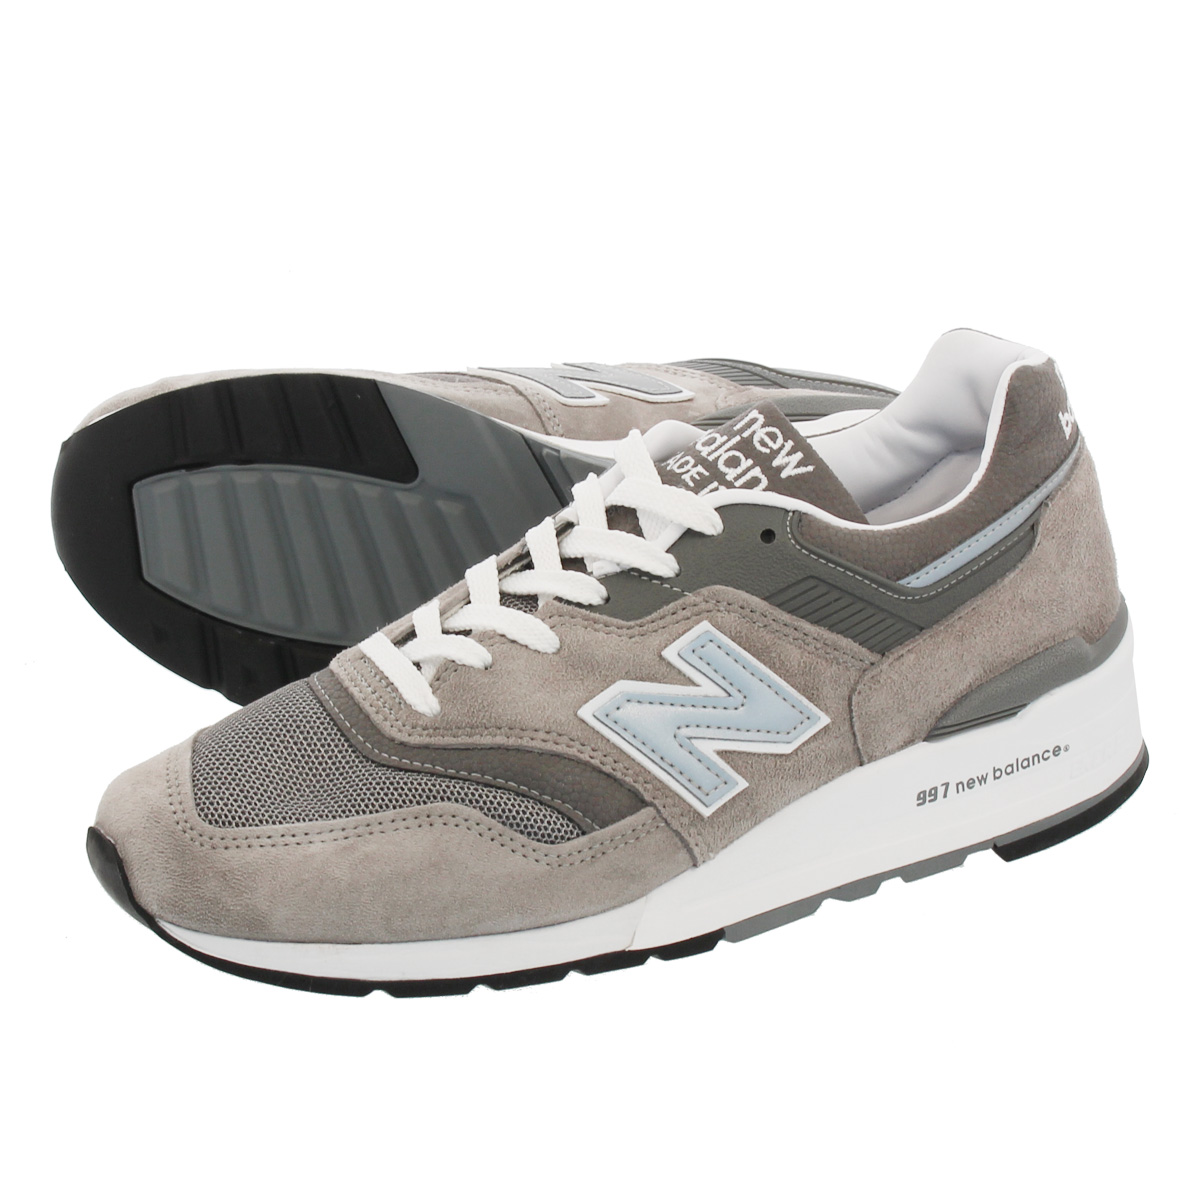 NEW BALANCE M997GY2 【MADE IN U.S.A.】 【Dワイズ】 ニューバランス M 997 GY2 GREY